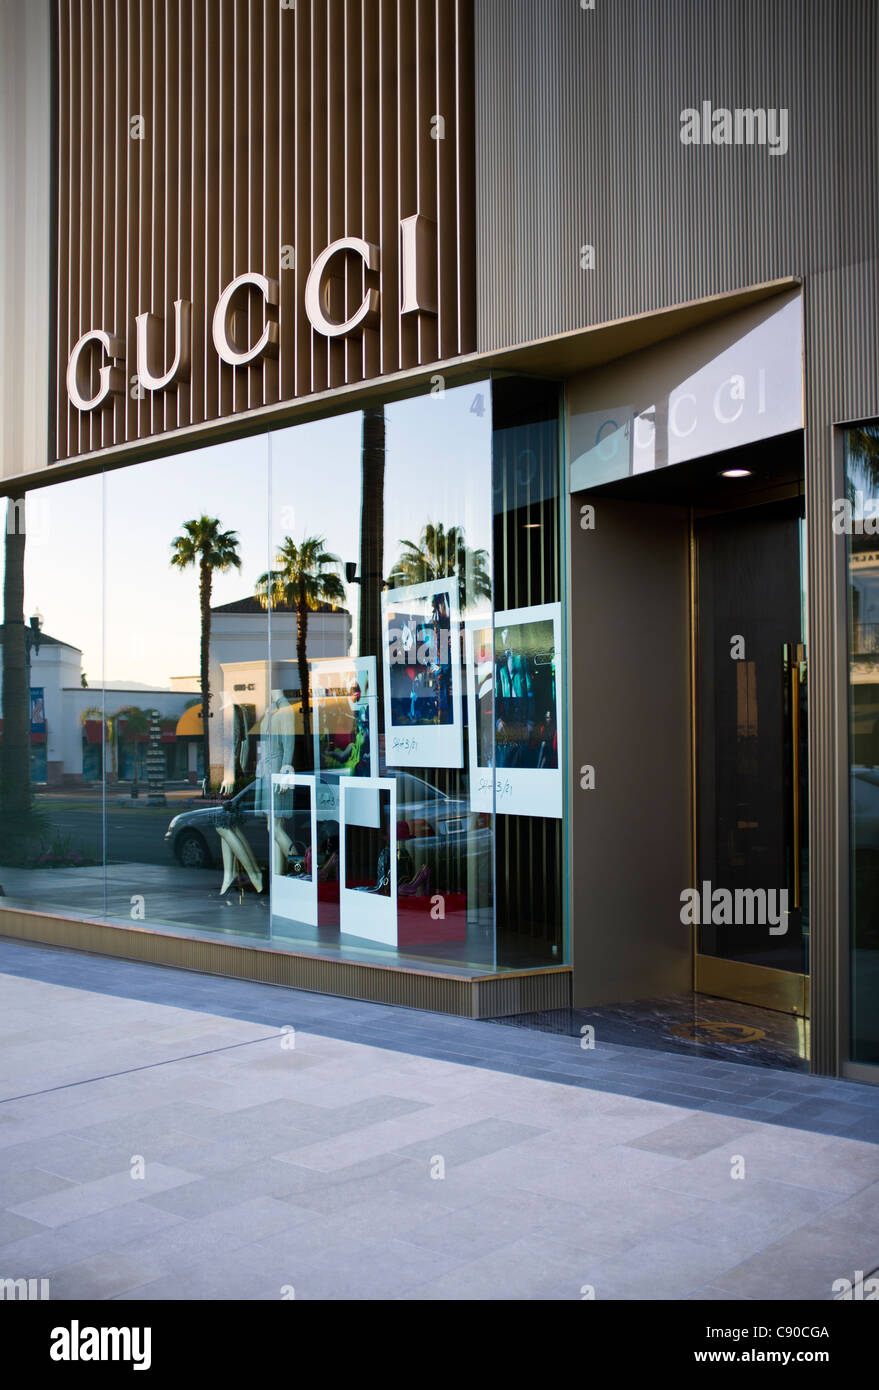 Beau Gucci Storefront On El Paseo In Palm Desert California.